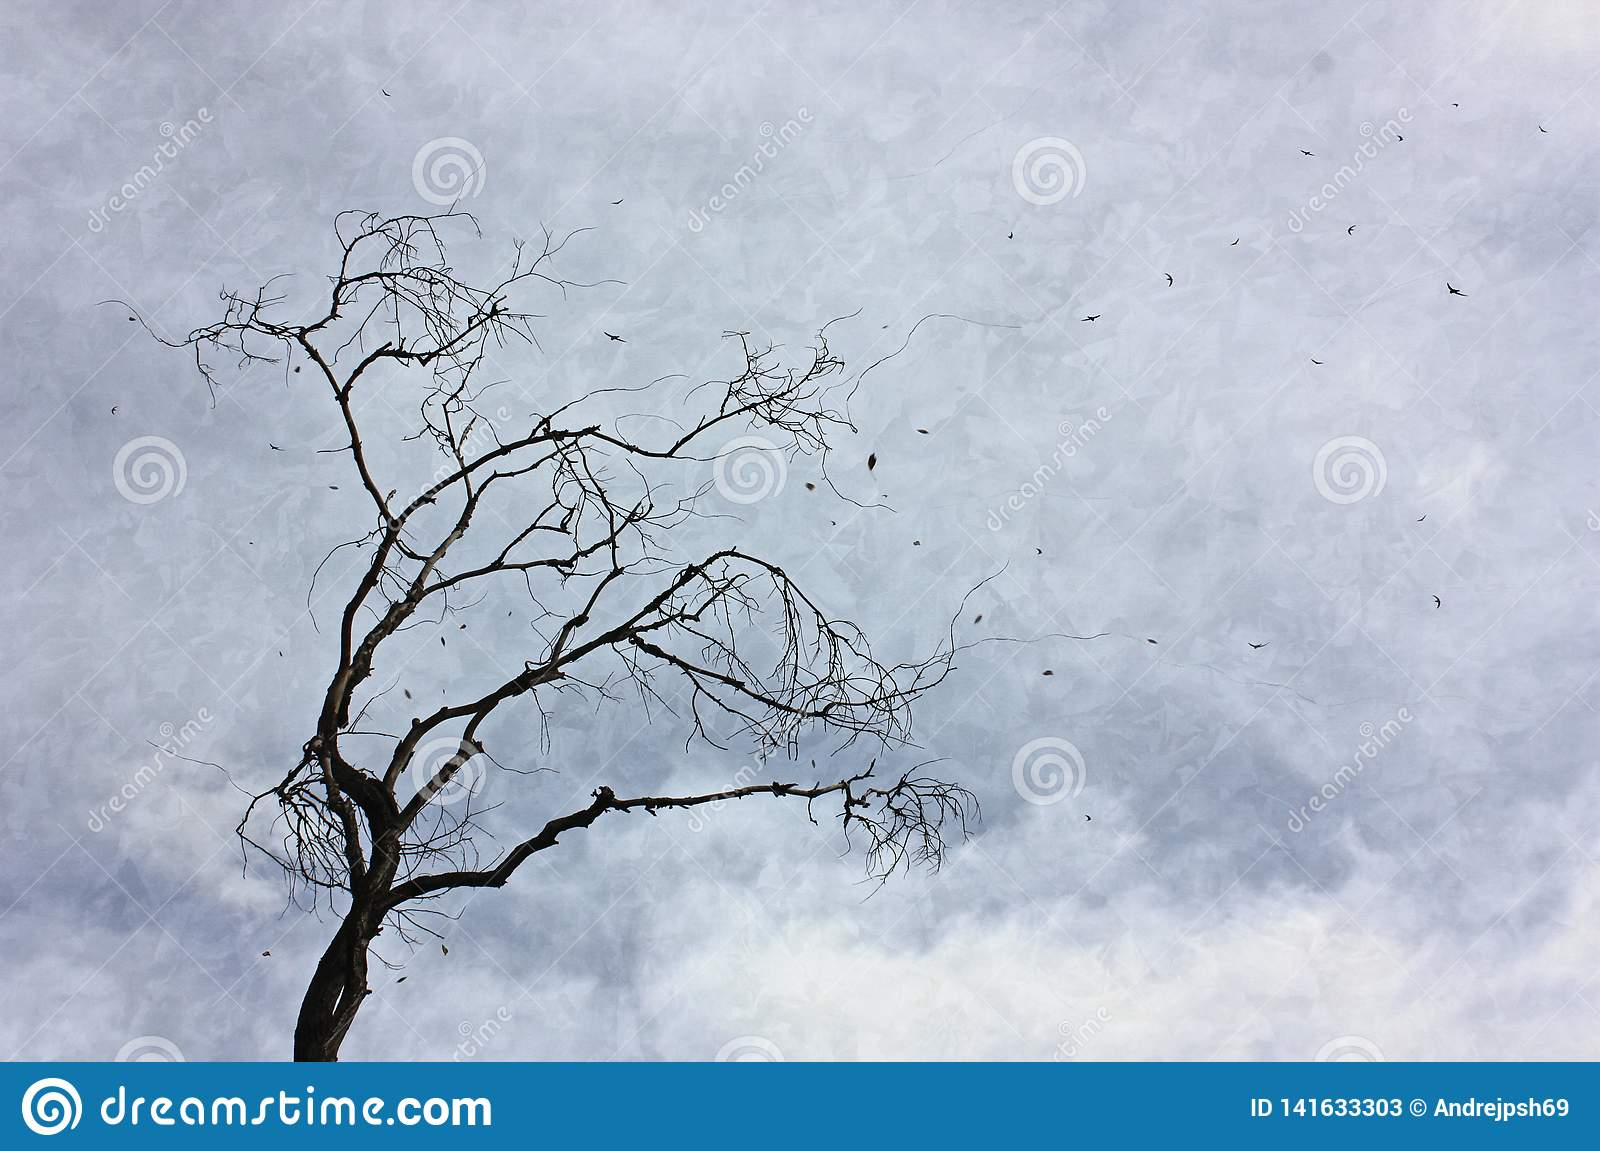 An old tree with leafy leaves against a cloudy sky.